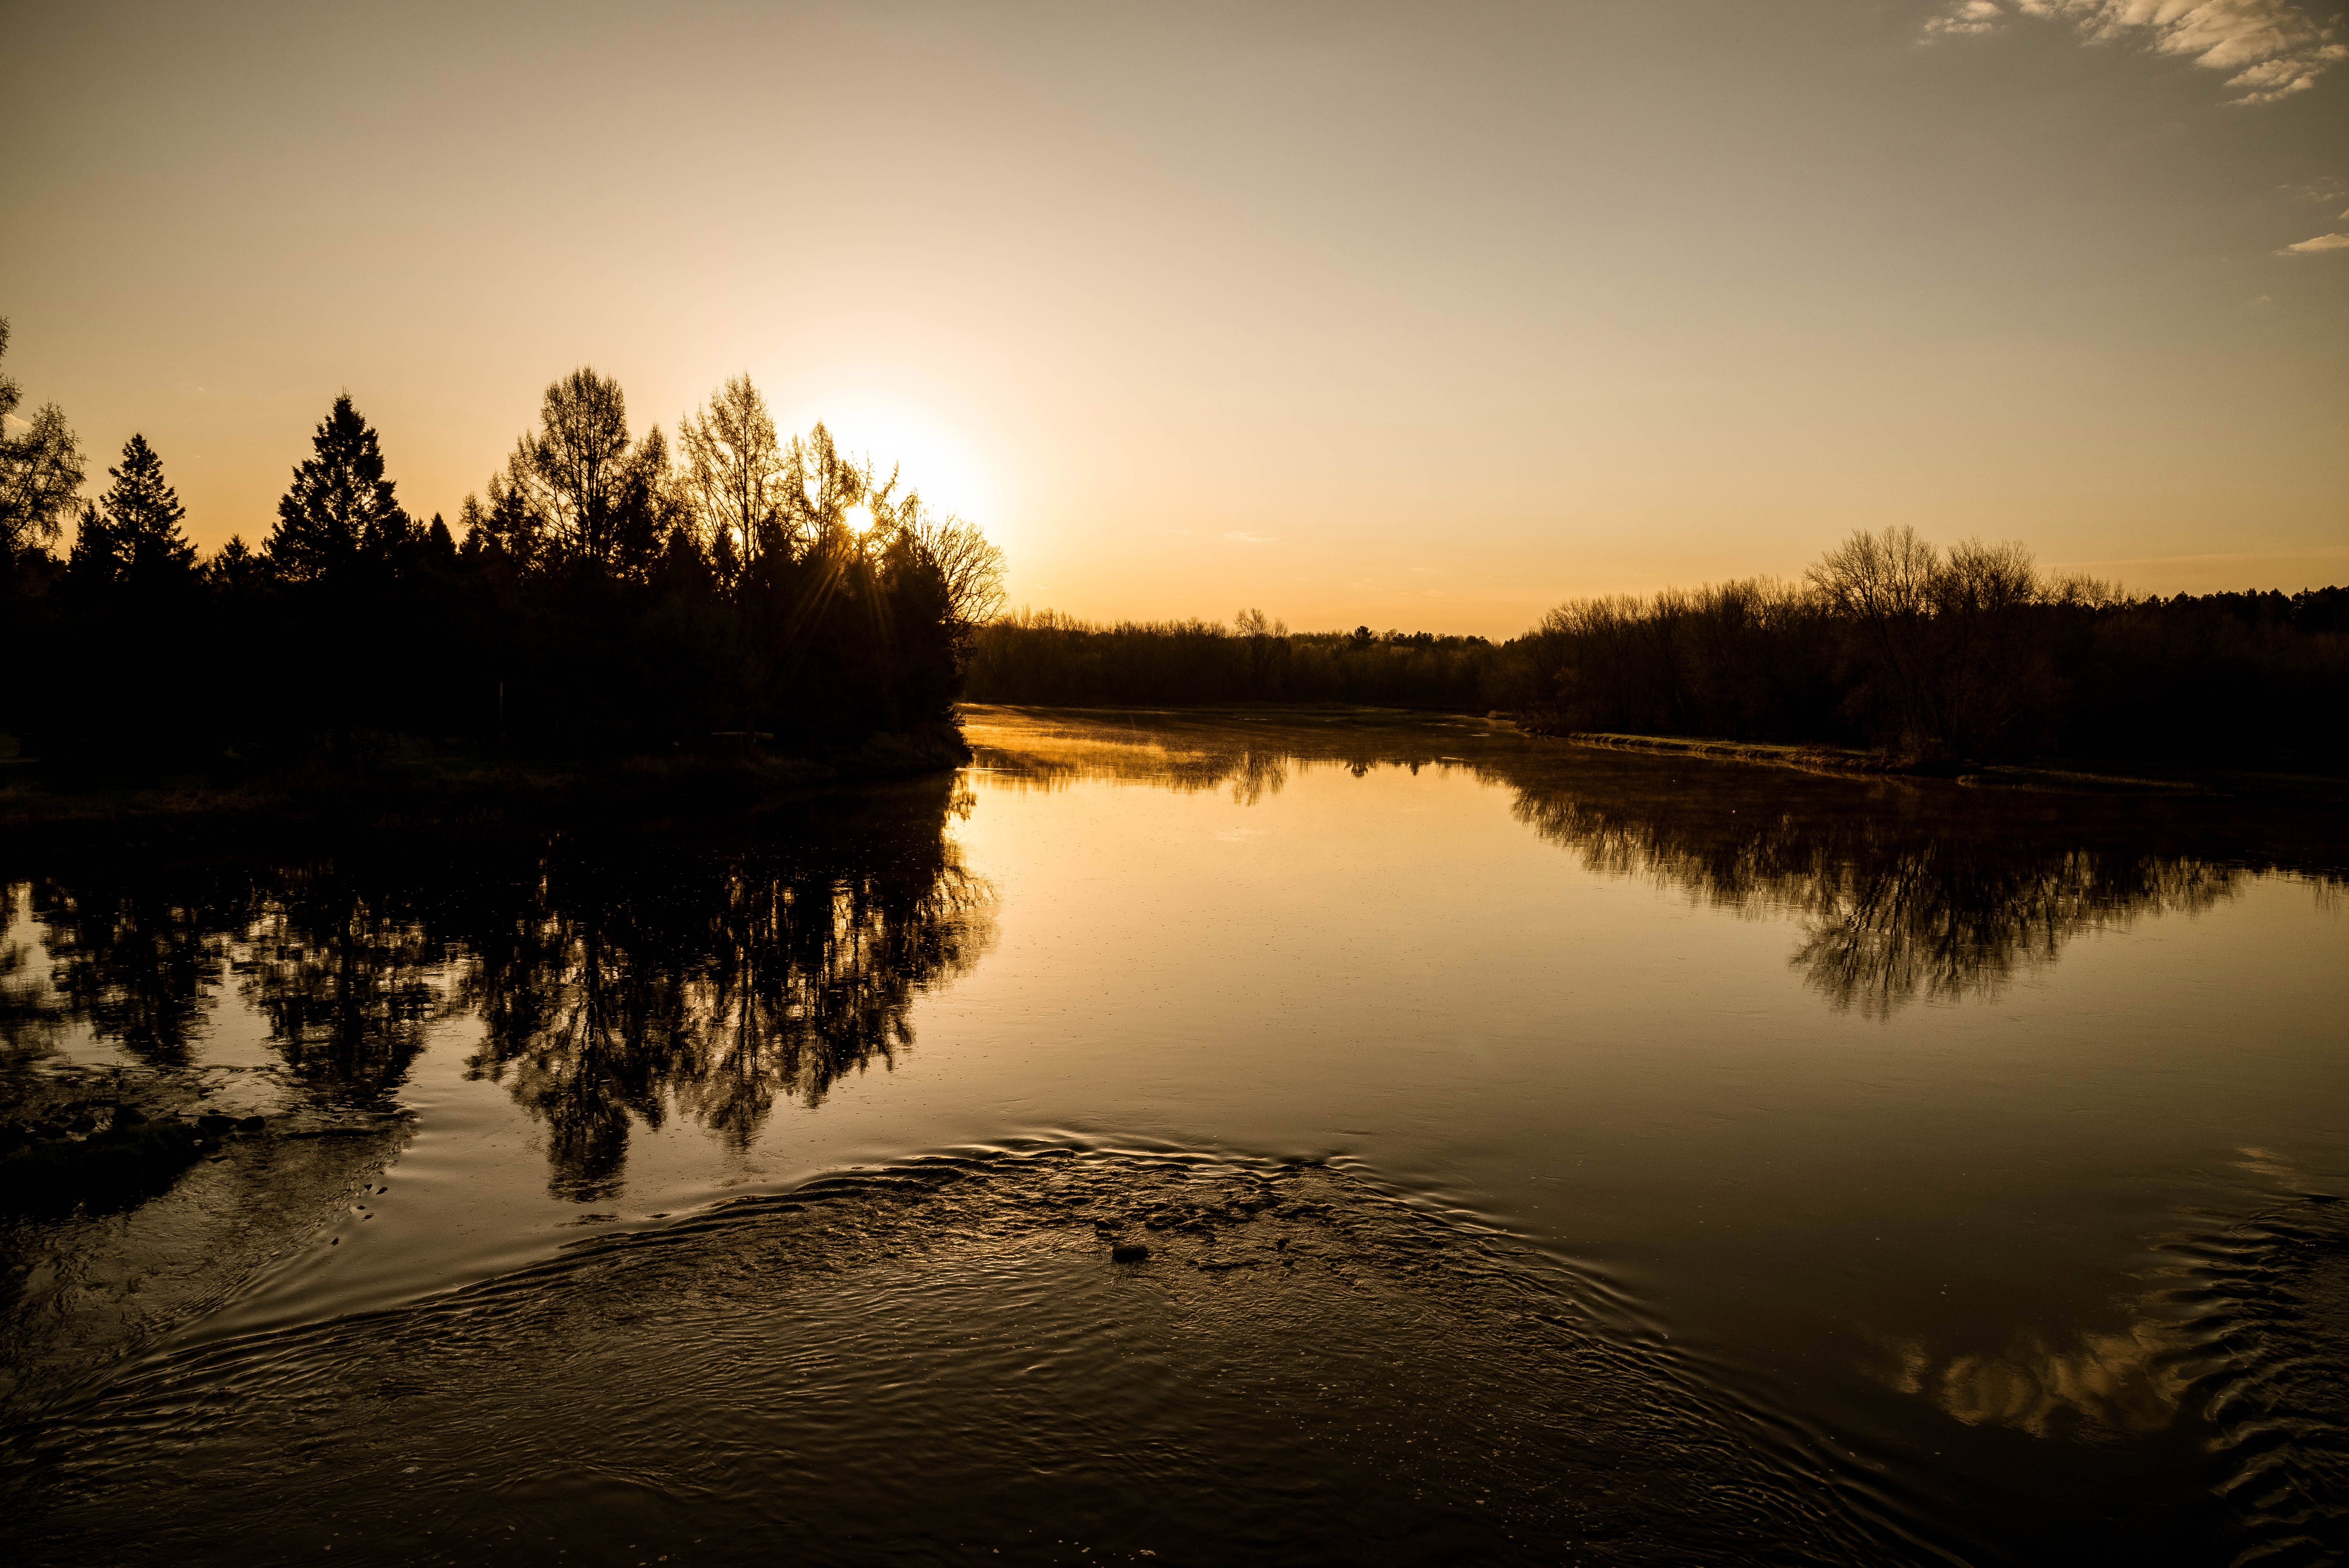 nature scenery at the flambeau river image free stock